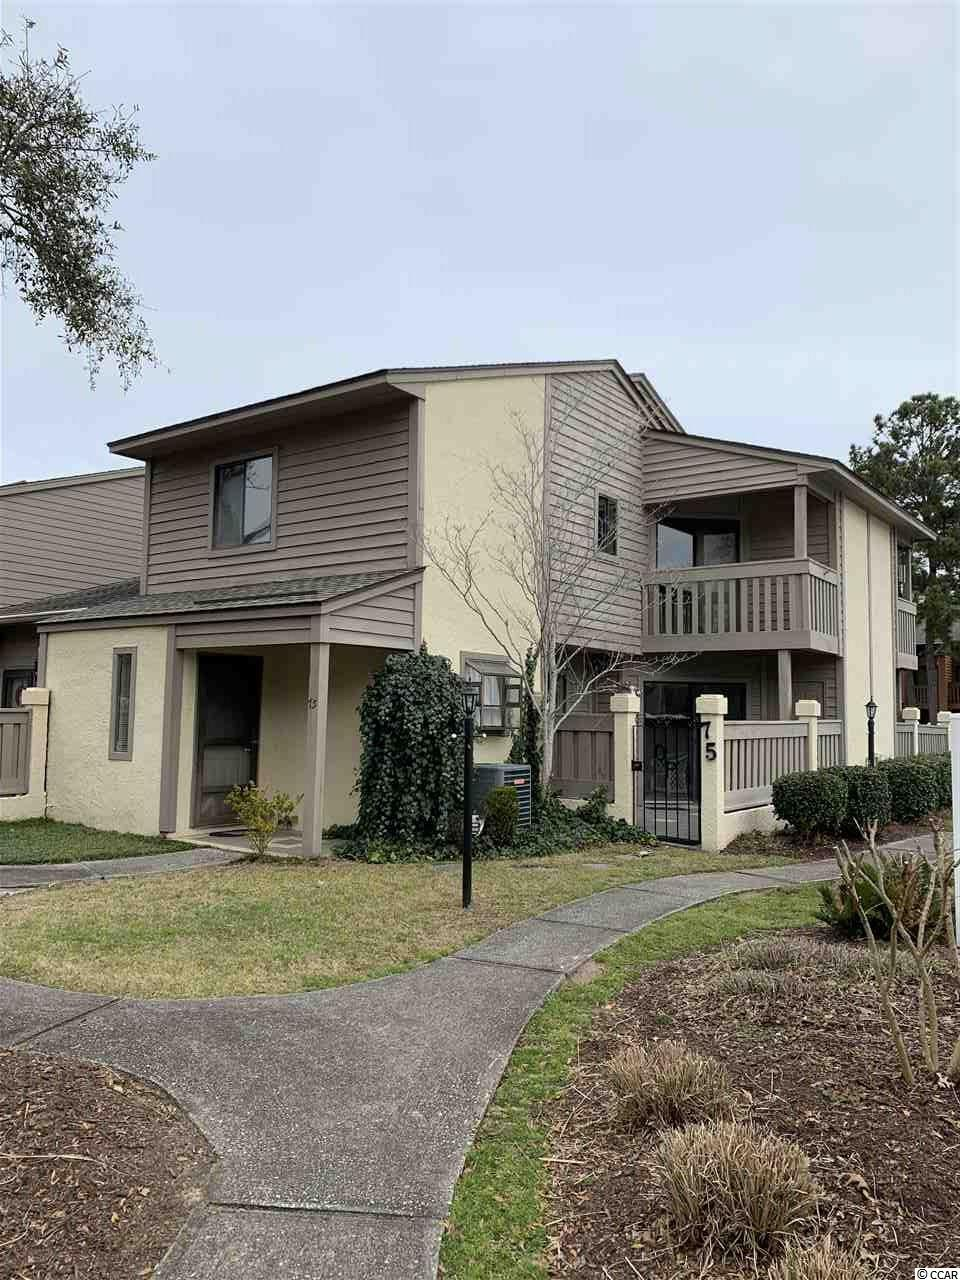 A charming 2 bedroom 1.5 bath townhouse East of Business 17 in Surfside, in the quiet community of Ocean Pines. This is a true Townhouse. No flood insurance required! Short walk or golf cart ride to the beach (approximately 4 blocks). Ocean Pines is a pet, golf cart and motorcycle friendly community showcasing private/gated swimming pool and tennis courts. HOA includes internet, cable, amenity upkeep, community landscaping, parking and trash pickup. Unit 75 is an end unit beside the pool and tennis court. It was used as a private residence by one individual and never rented. The home features a large living and dining room space that looks out onto the patio next to the swimming pool. Both bedrooms and the full bathroom are located upstairs. The master bedroom features a walk-in closet and a balcony that overlooks the pool and tennis courts. The half bath is located downstairs. All appliances remain. Hurry! It won't last long! ,